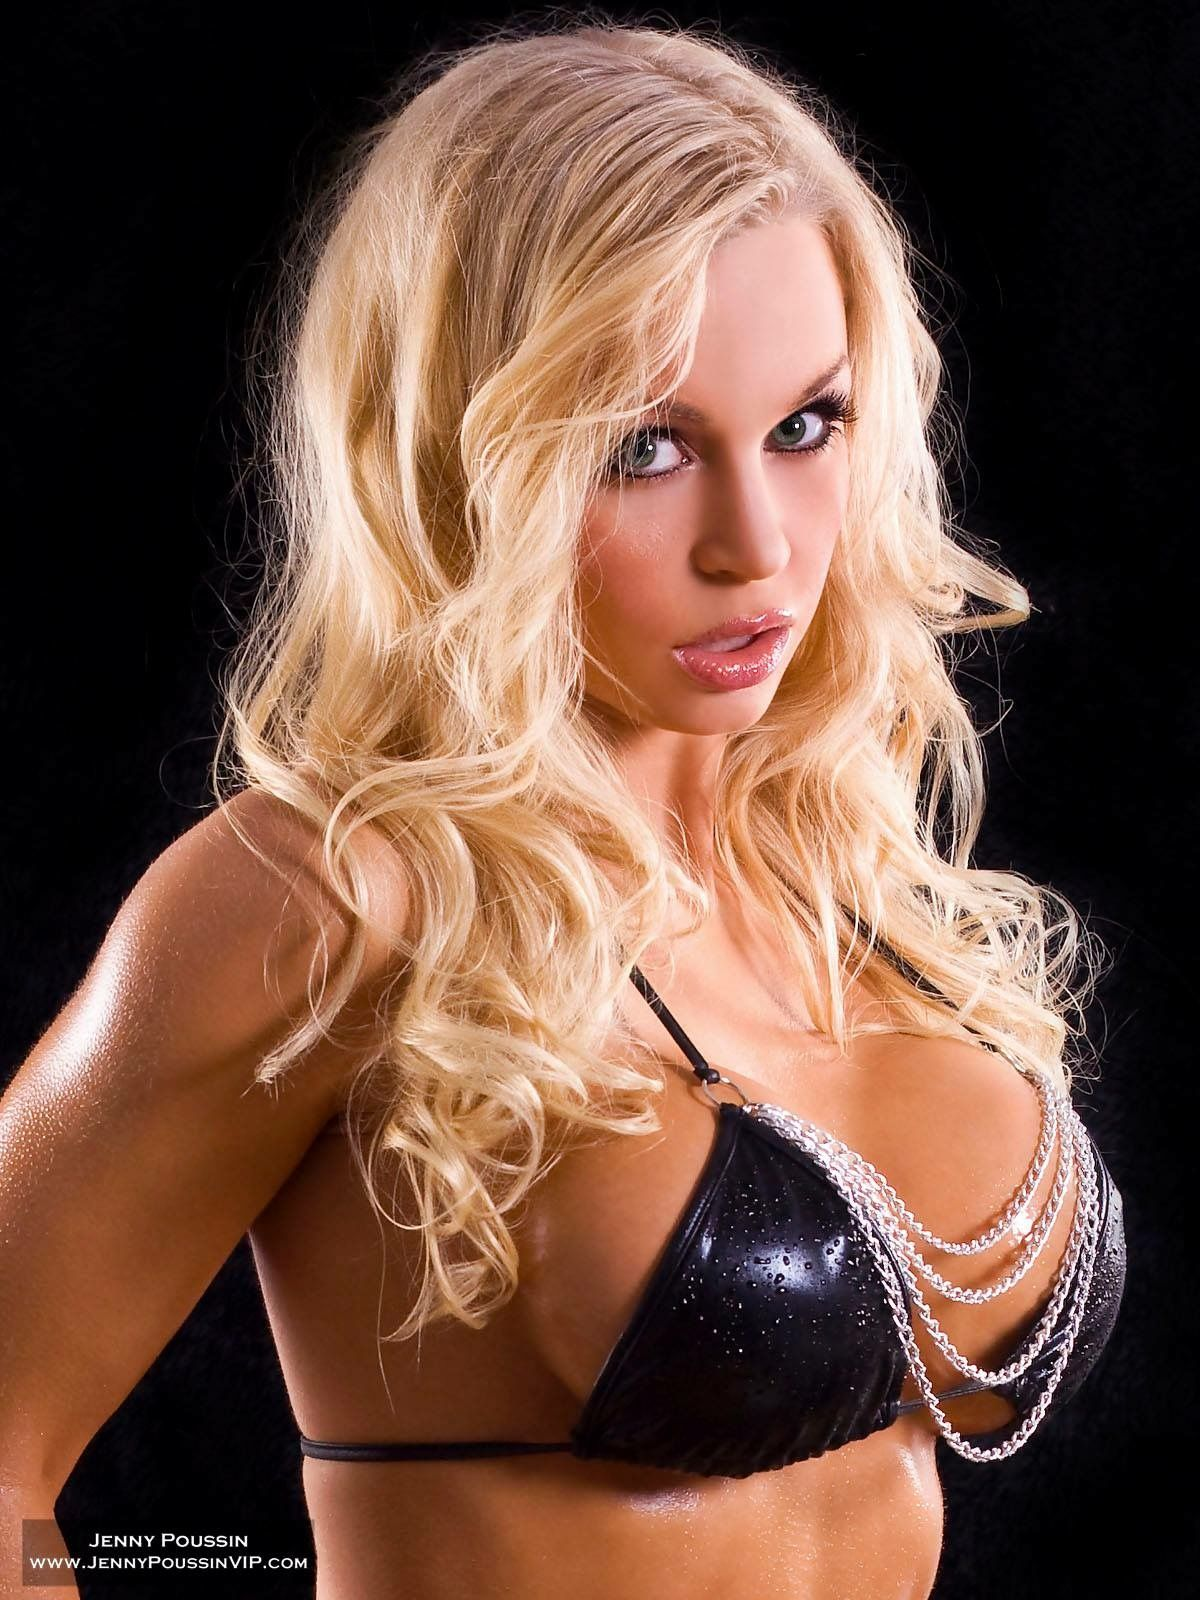 pinthe mancave boston on jenny poussin | pinterest